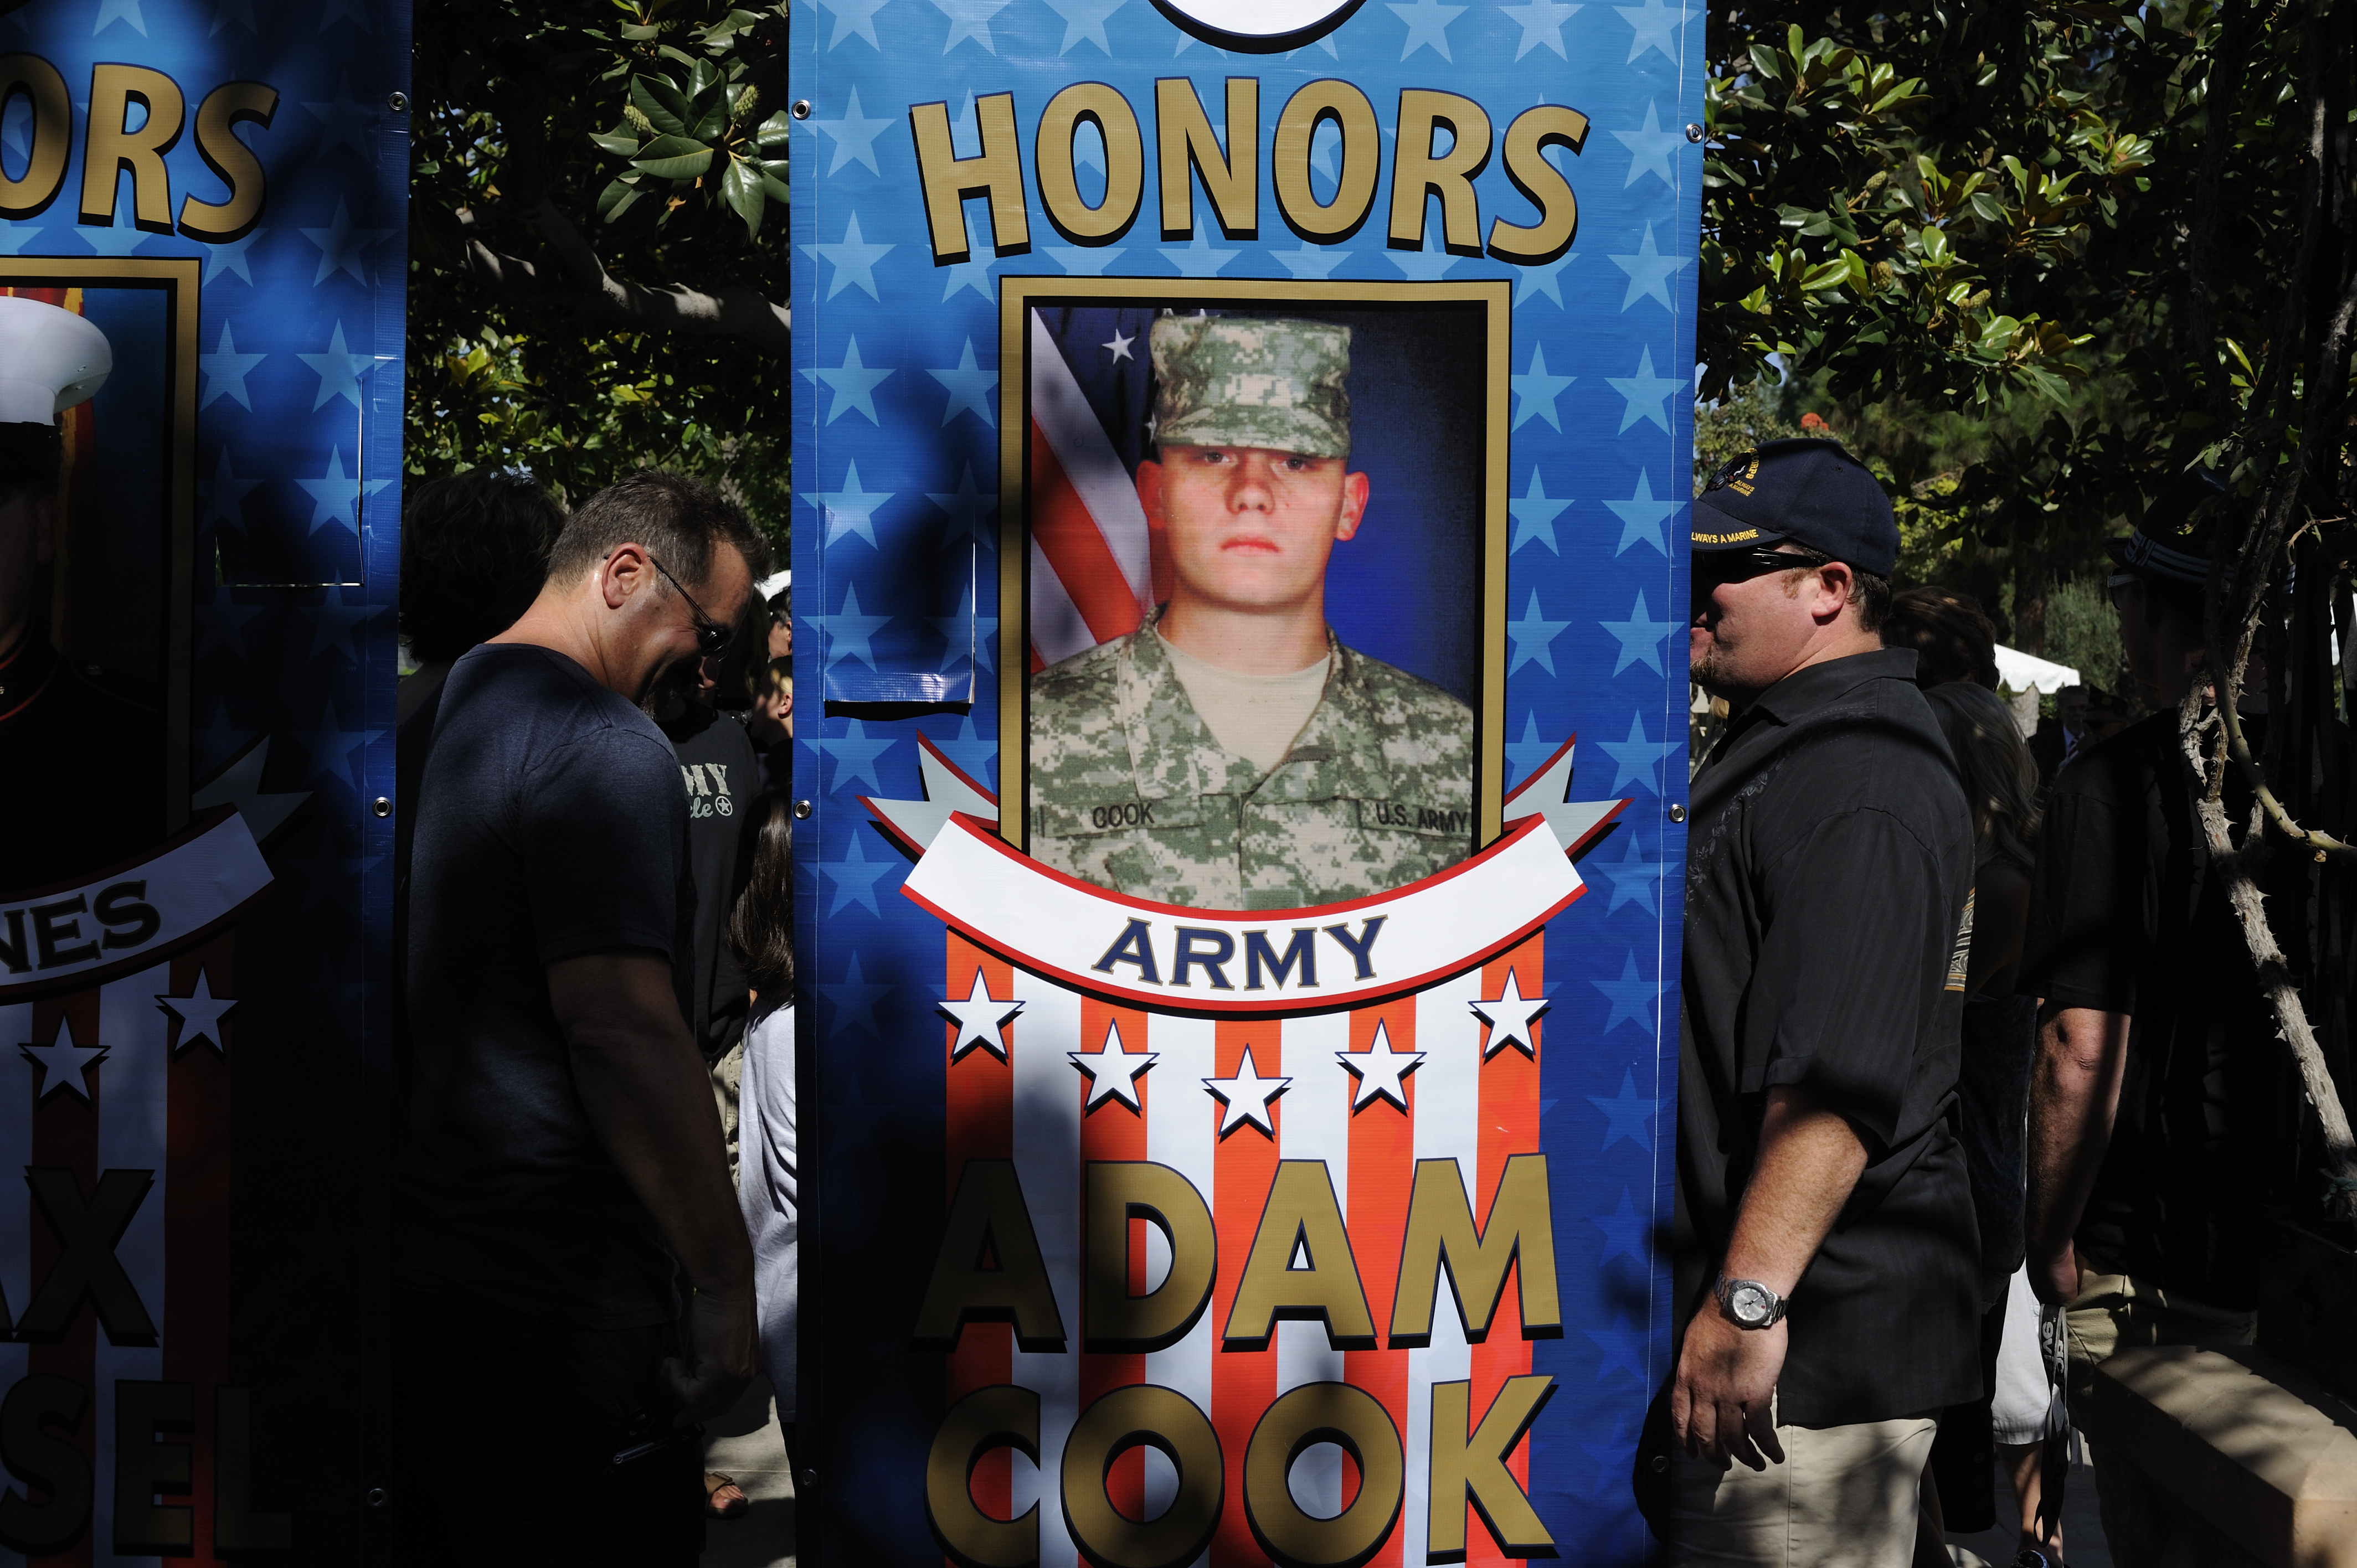 Banner Ceremony - August 24, 2010